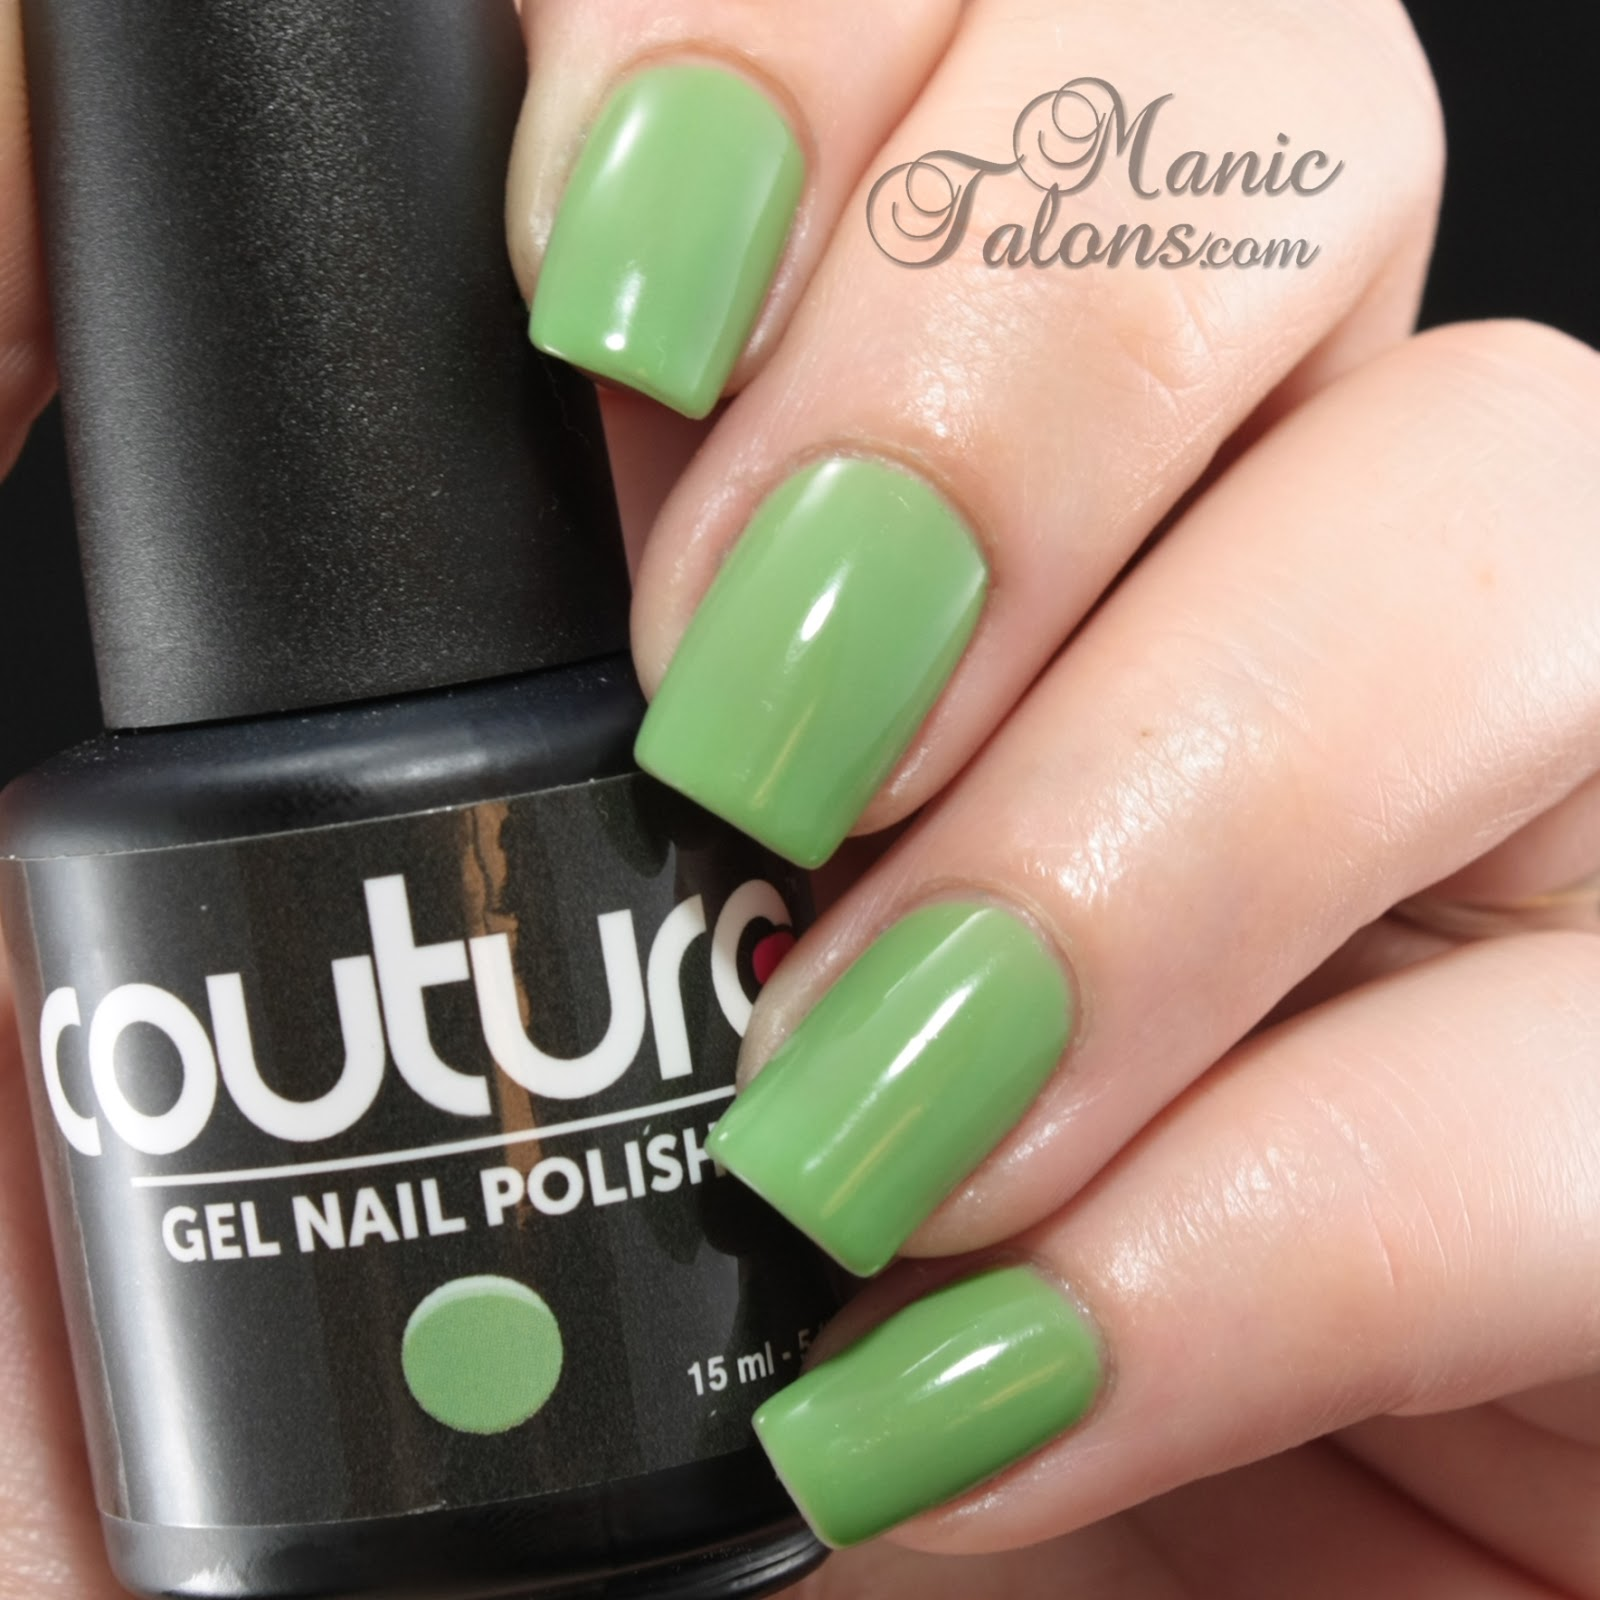 Couture Soak Off Gel Polish Big Spender Swatch